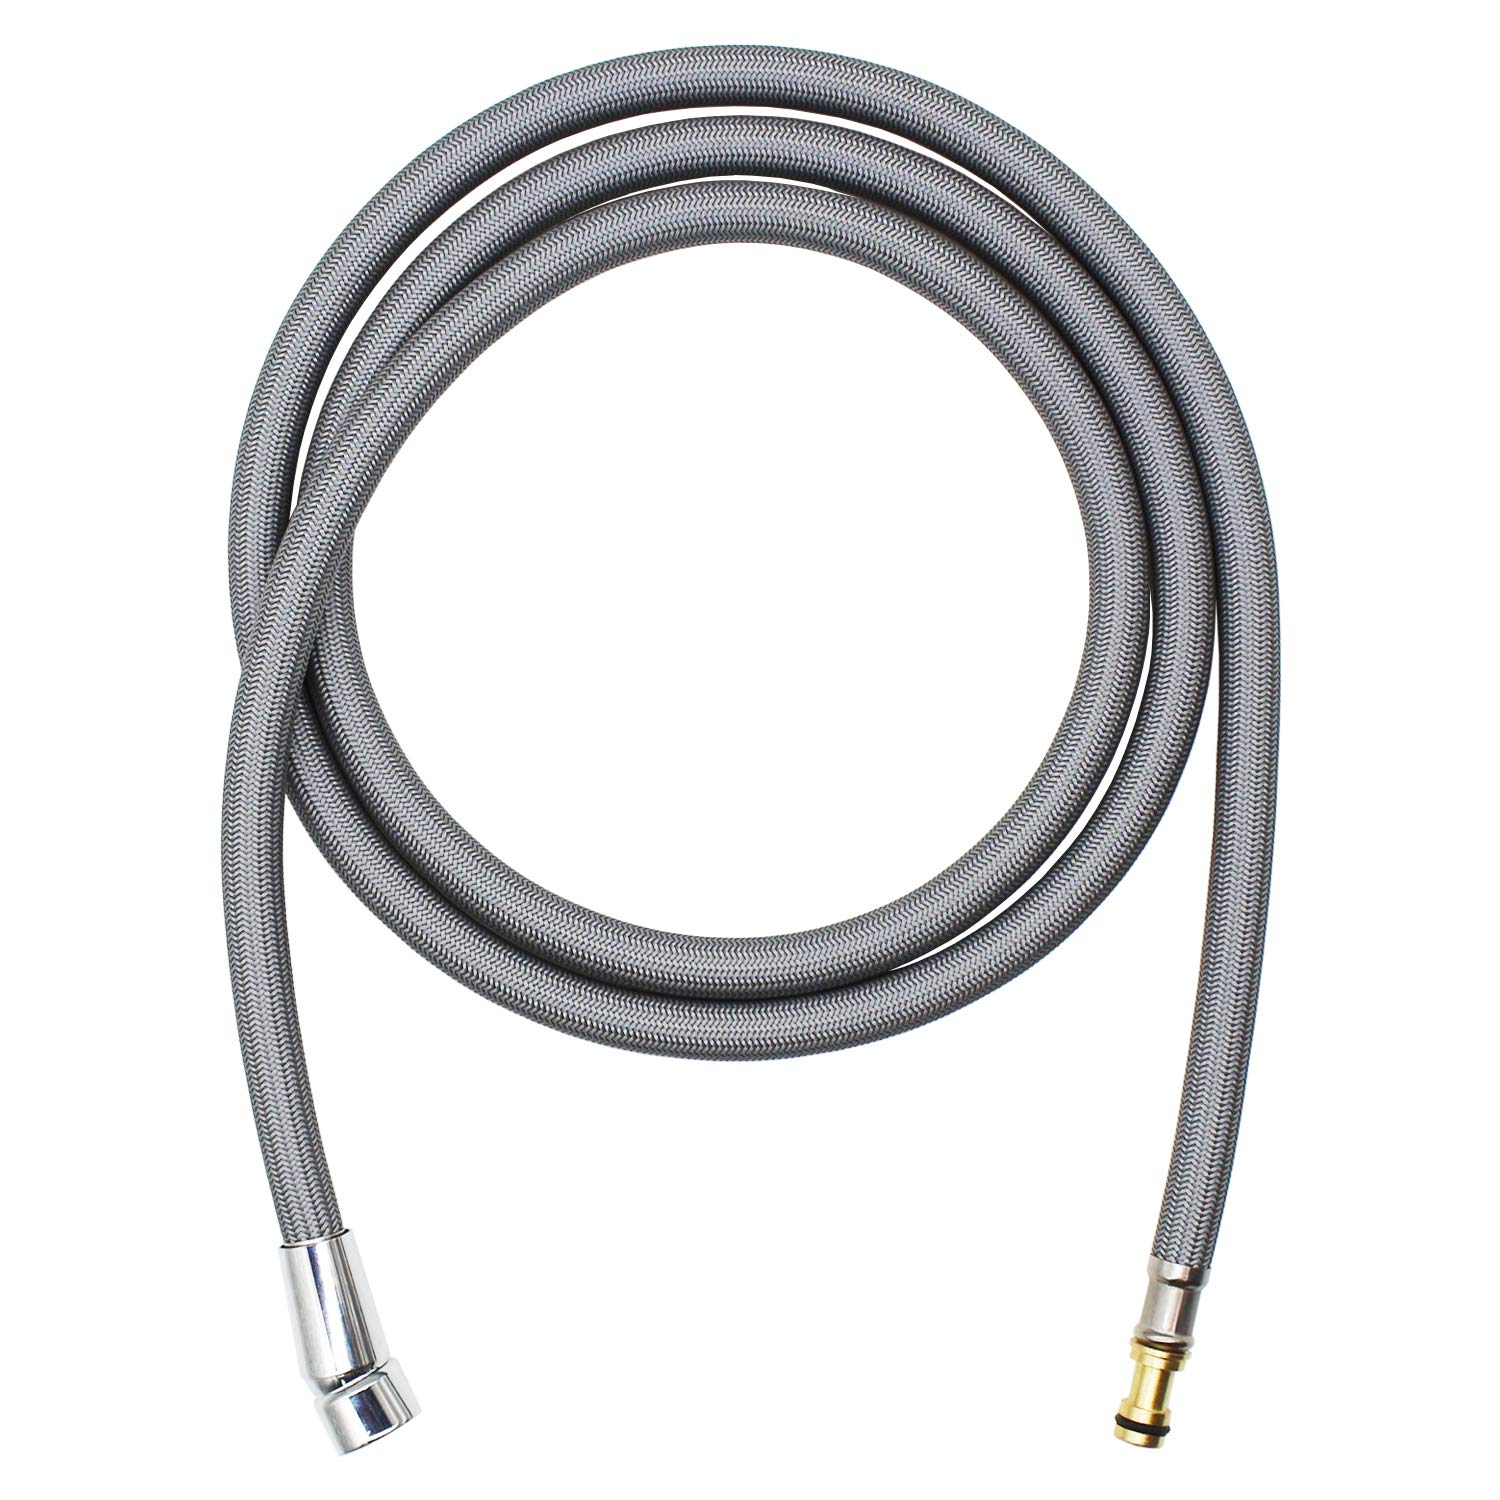 Moen replacement hose kit model number #150259 for moen pulldown kitchen faucets with the hose part number #187108 by Li-SUN